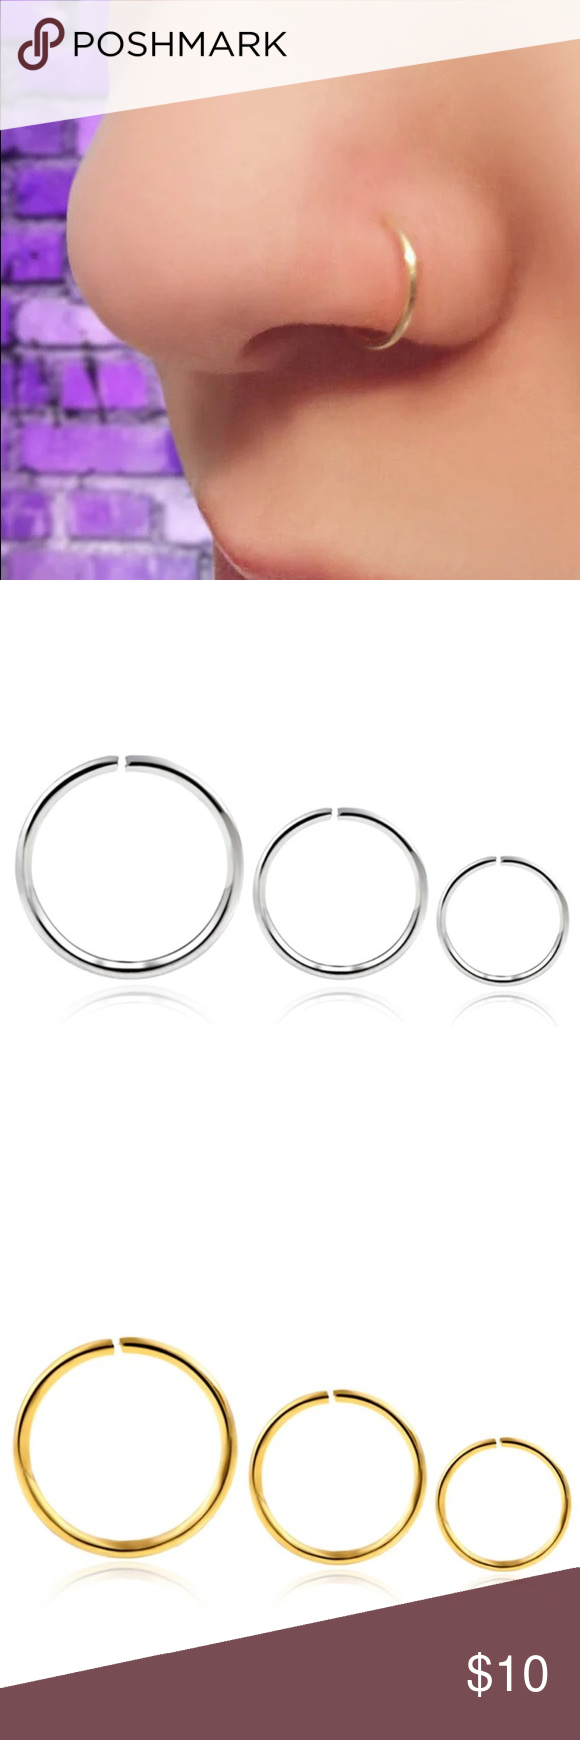 Handmade Nose Ring Hoop Boutique Nose Rings Hoop Nose Ring Handmade Jewelry Ring